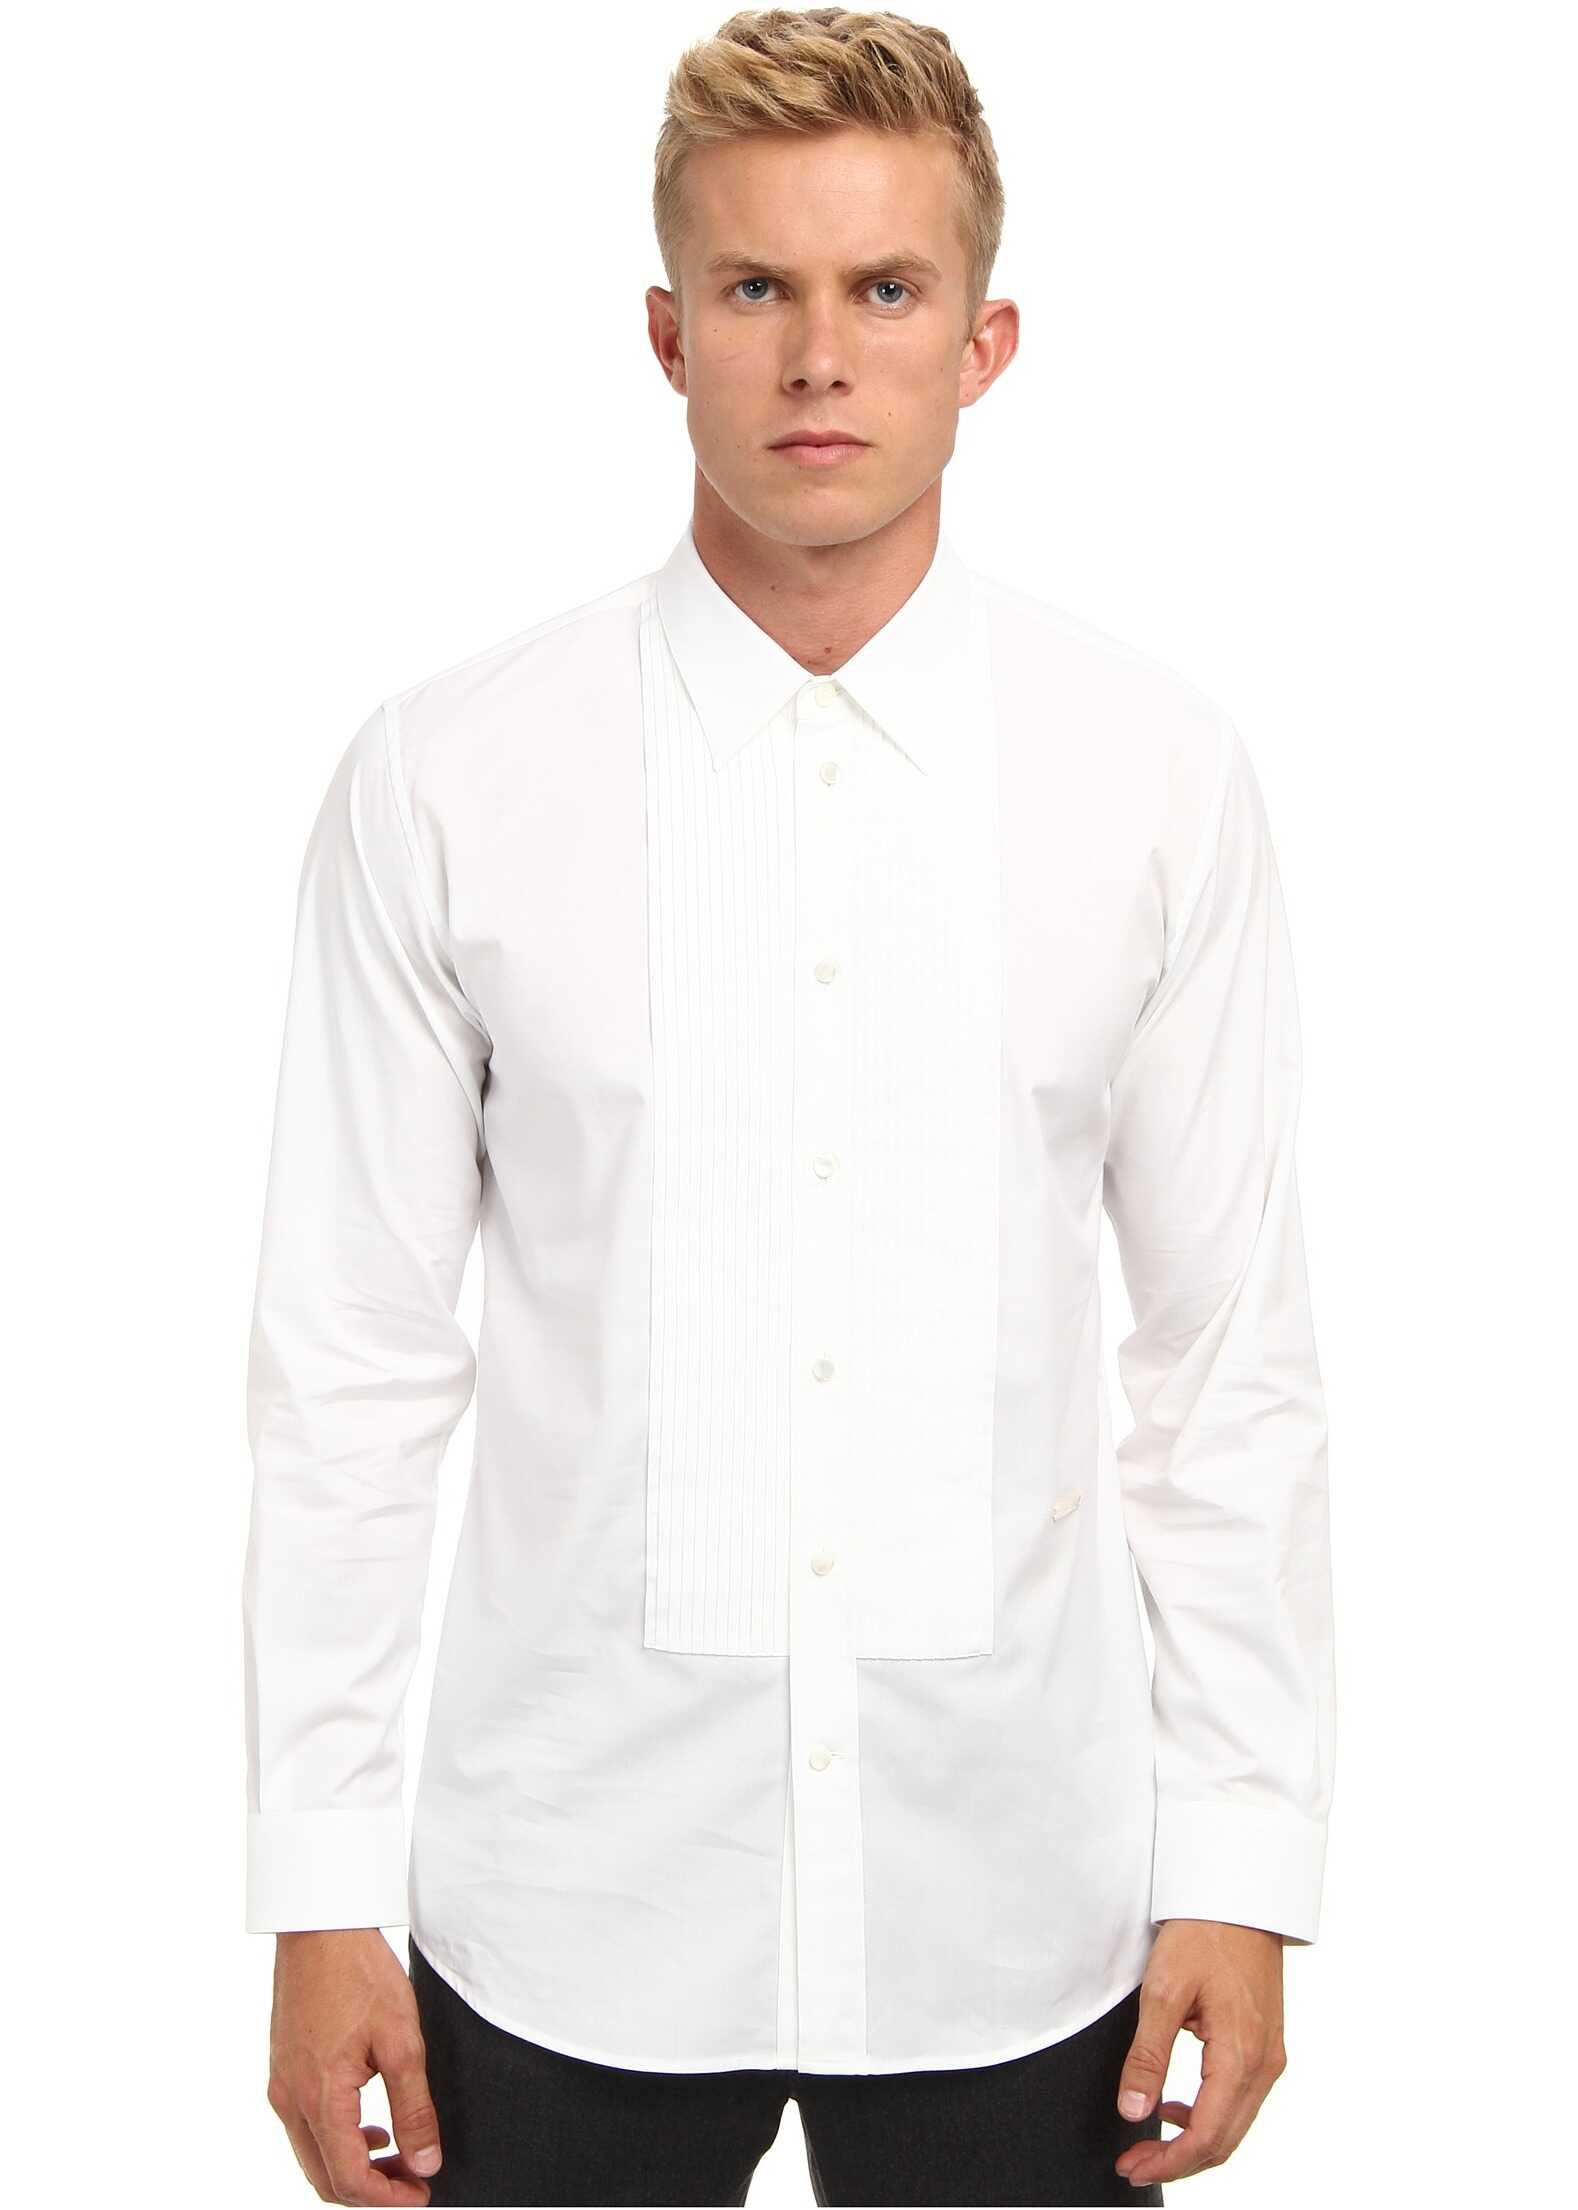 Marc Jacobs Runway Cotton Tuxedo Button Up White